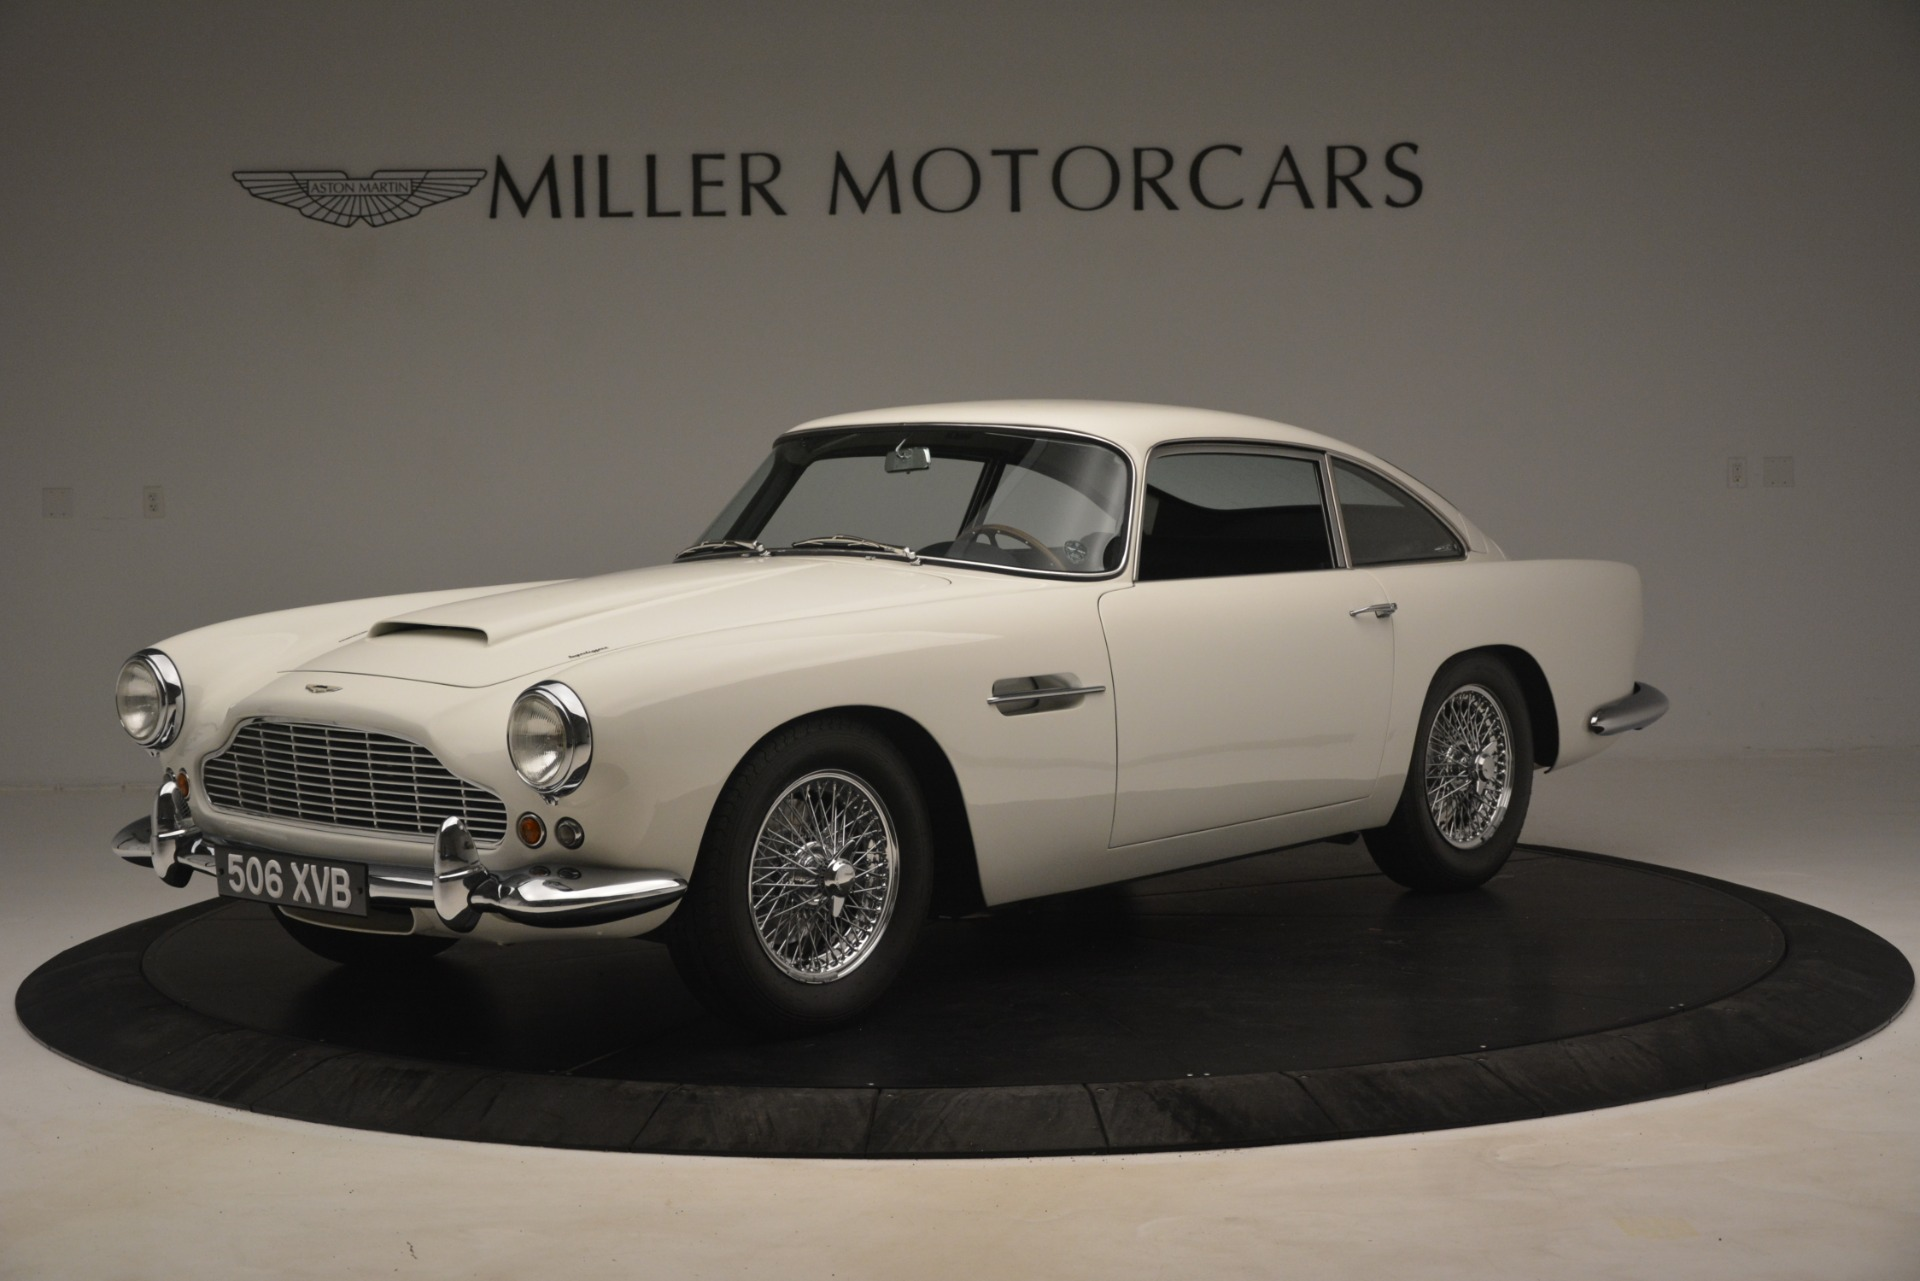 Used 1961 Aston Martin DB4 Series IV Coupe for sale $625,900 at Aston Martin of Greenwich in Greenwich CT 06830 1